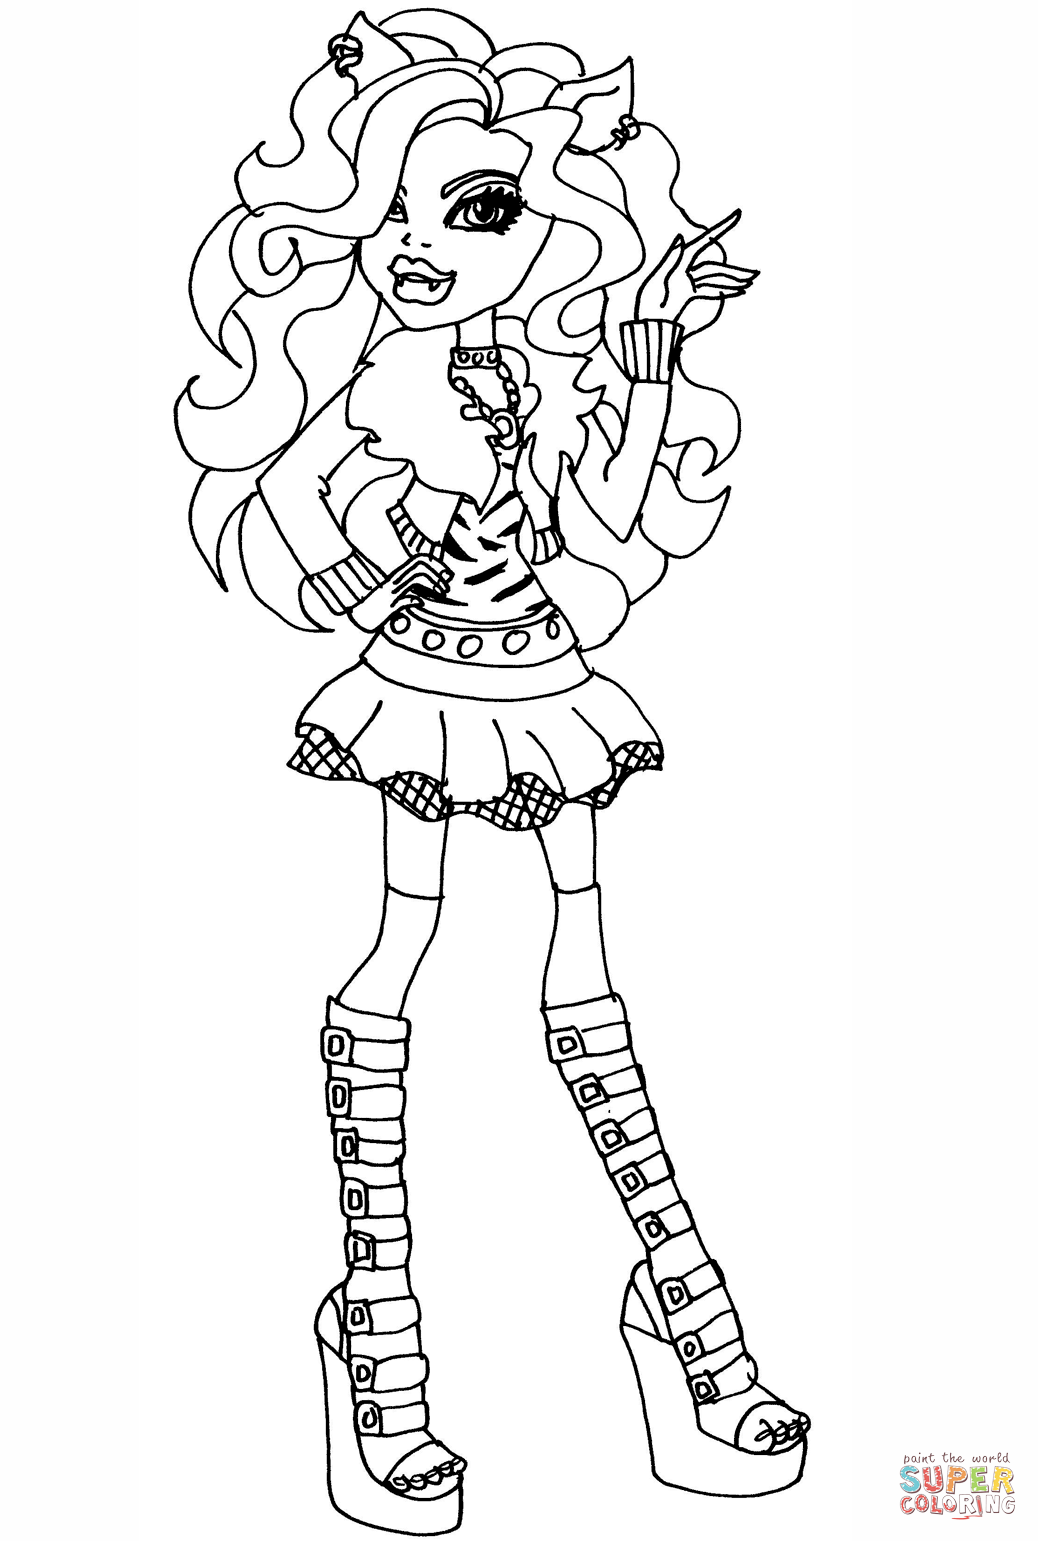 monster high pictures to print and colour monster high character coloring pages best coloring pictures monster colour print to and high